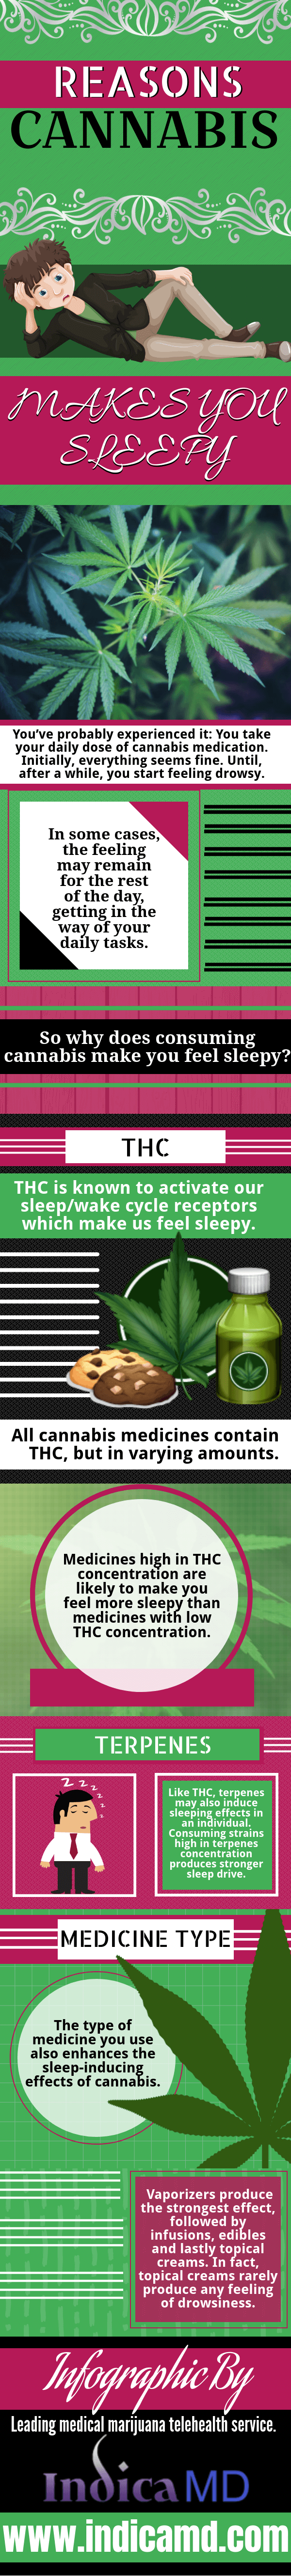 Reasons Cannabis Makes You Sleepy